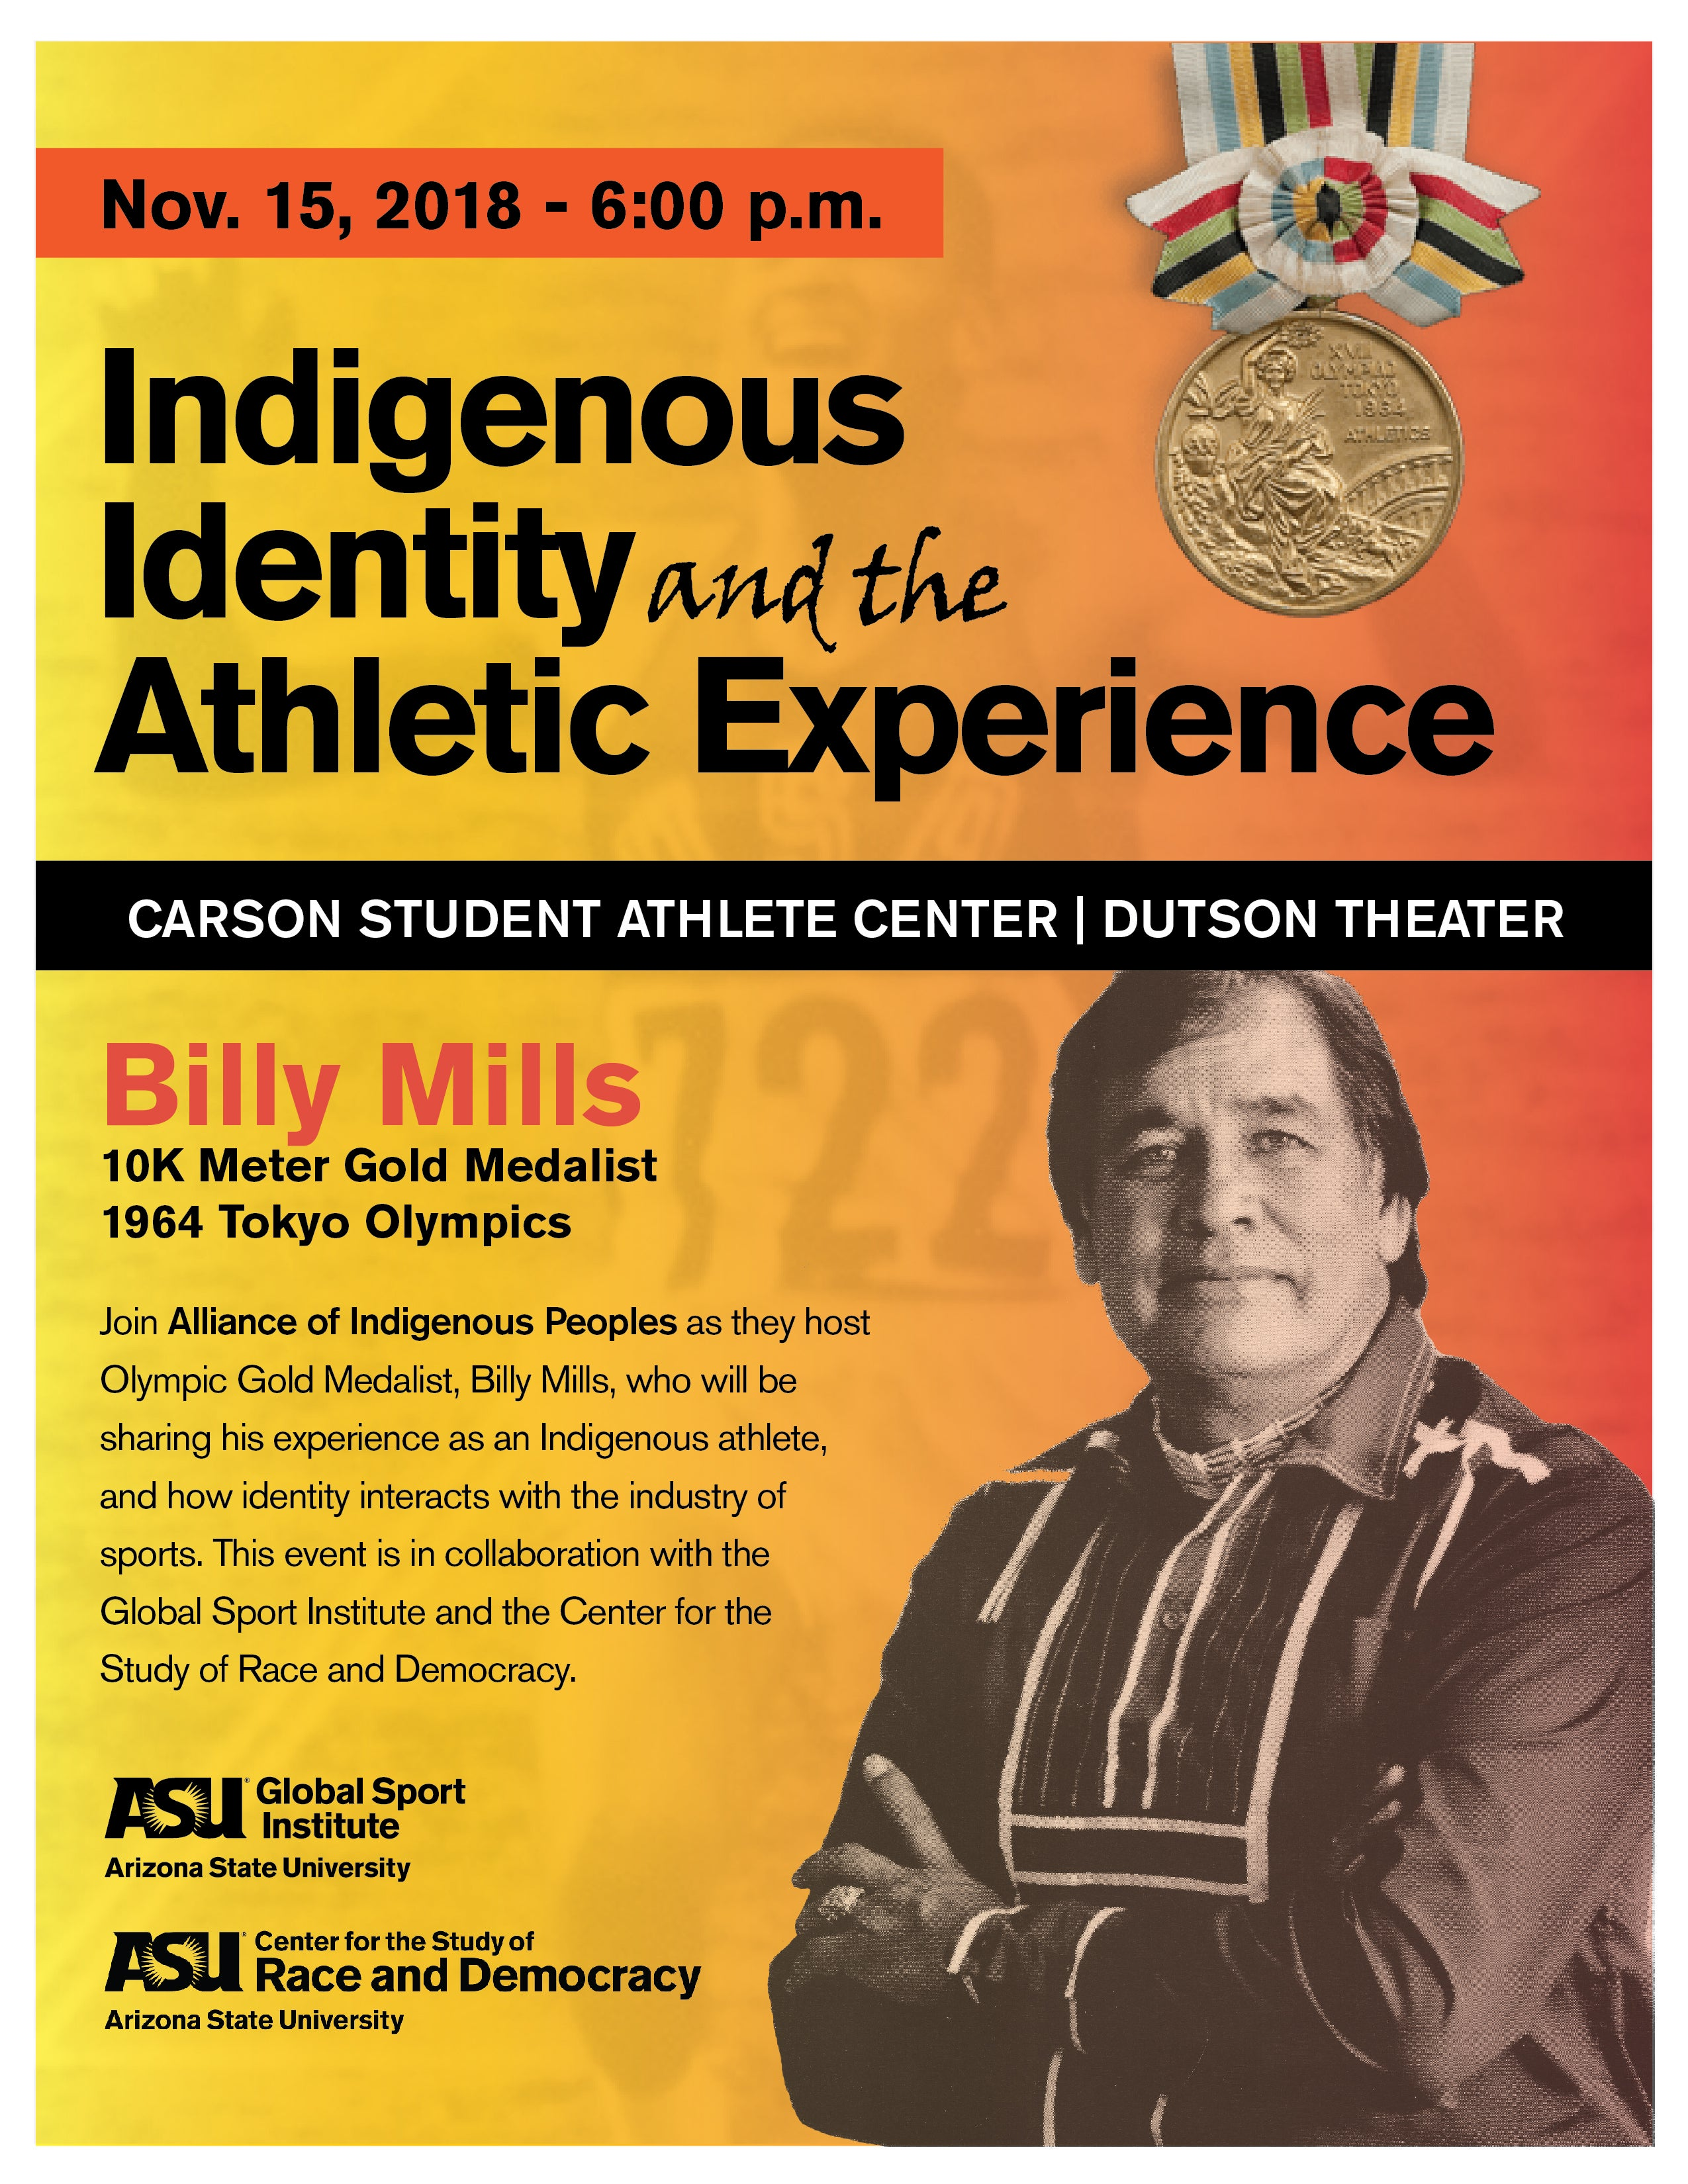 Indigenous Identity and the Athletic Experience with Billy Mills